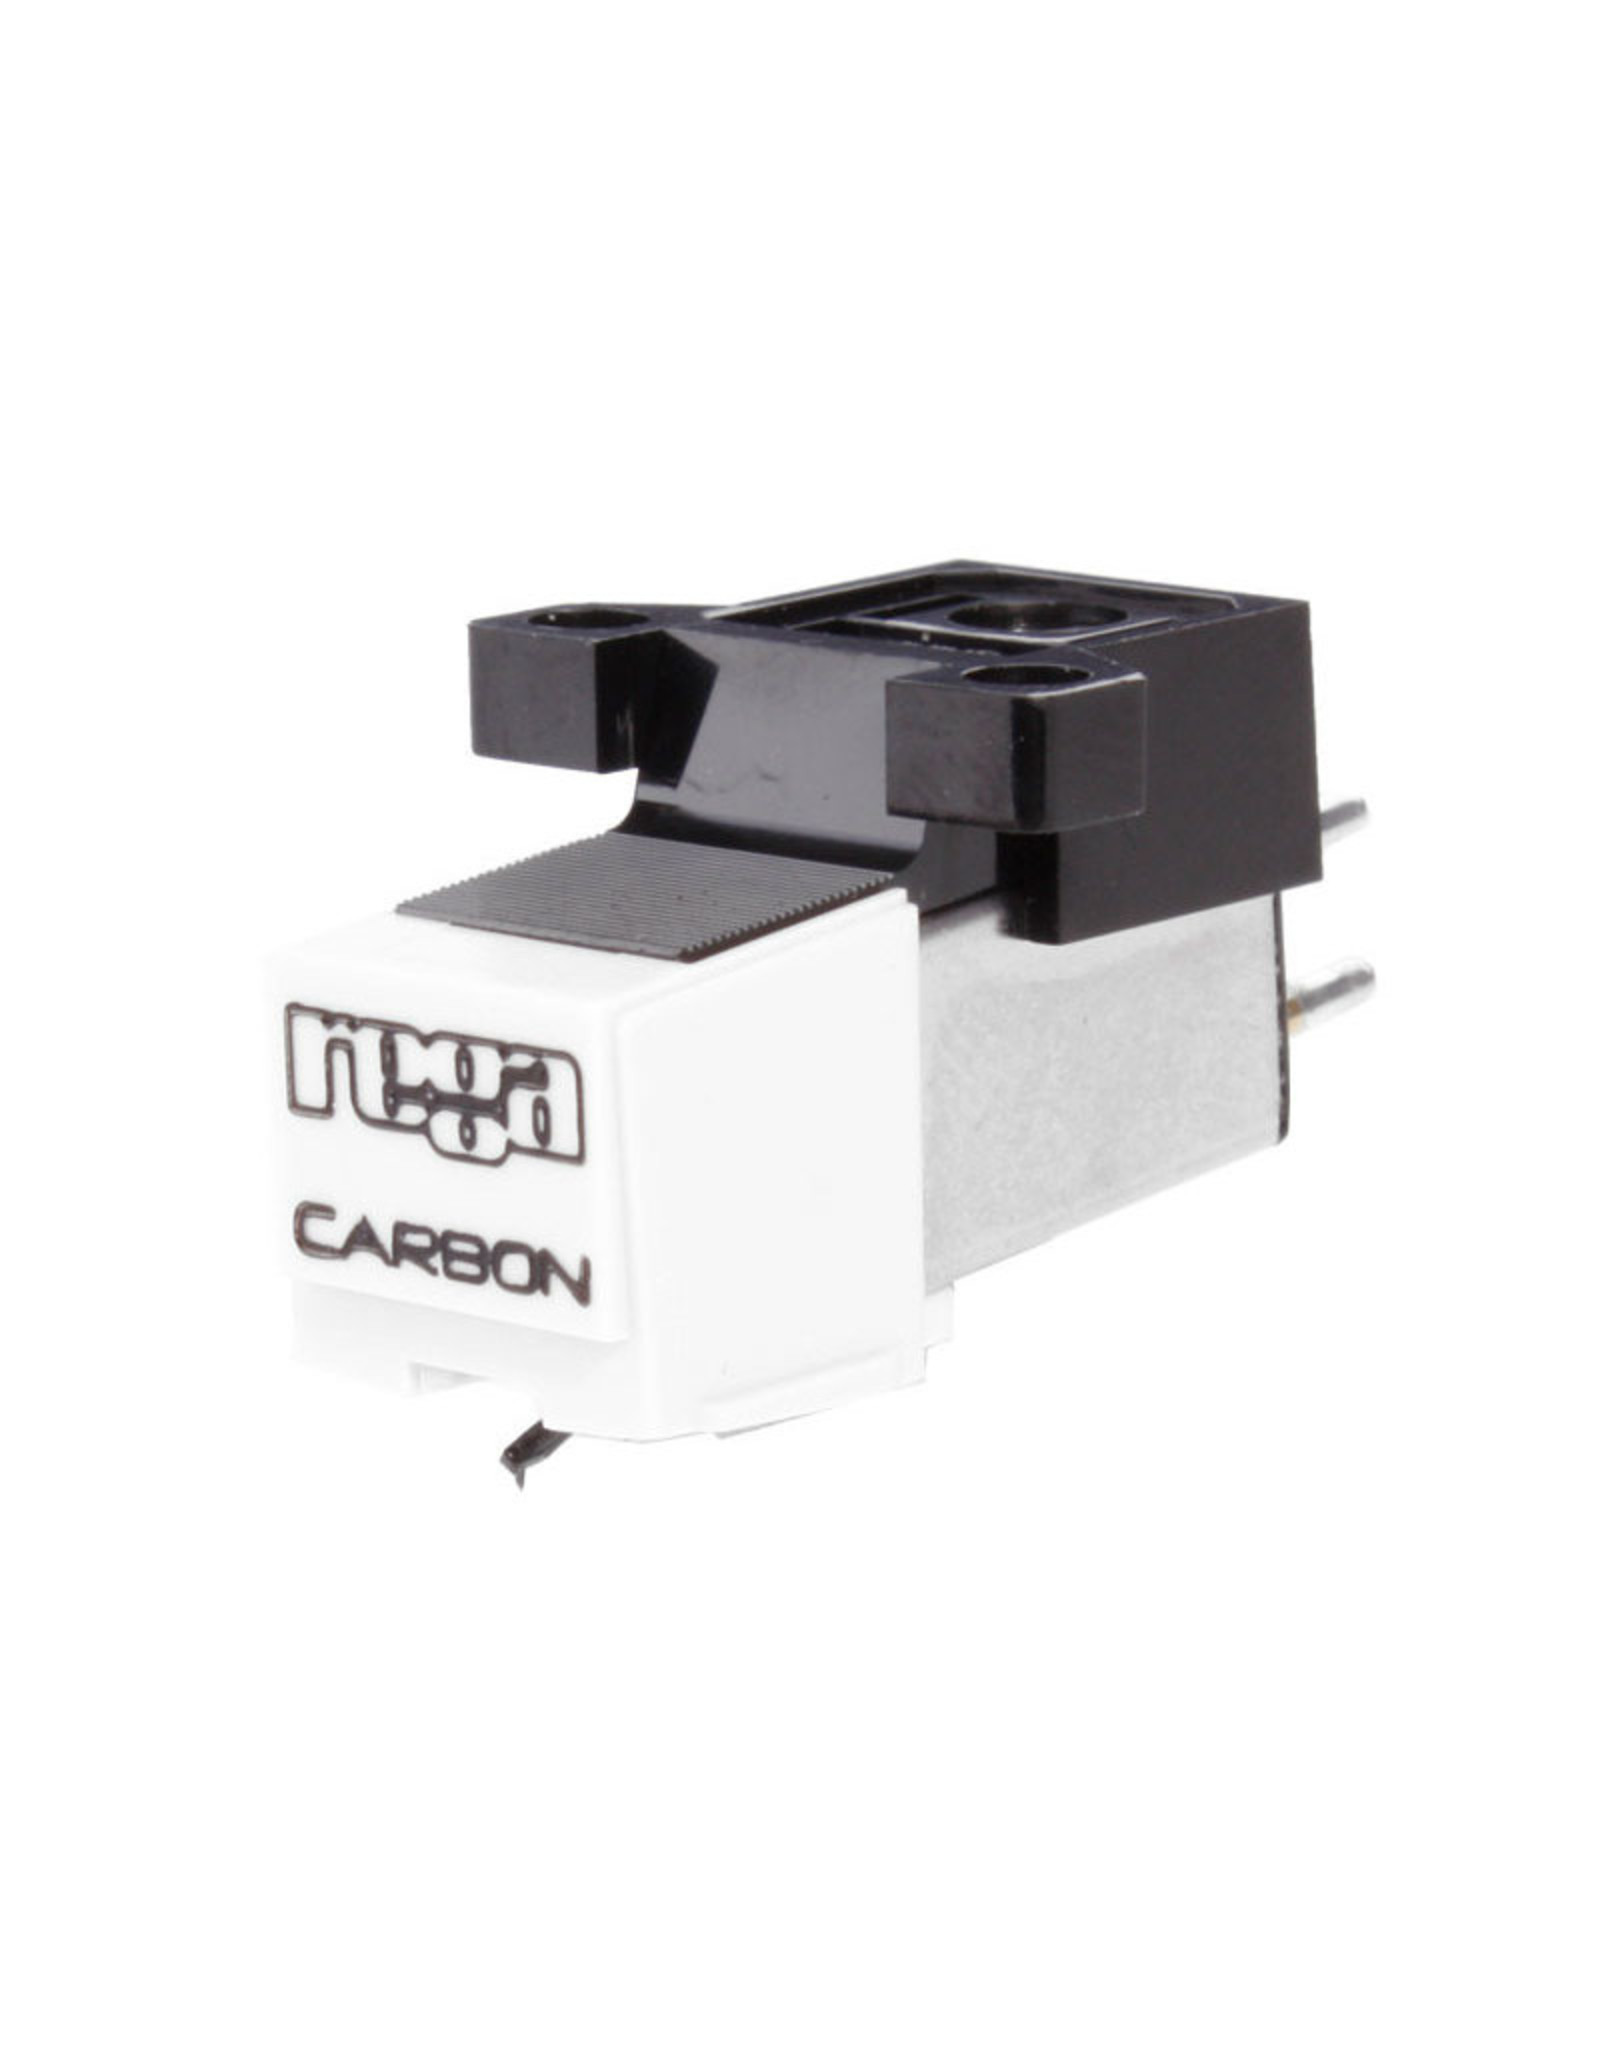 Rega Rega Carbon Phono Cartridge